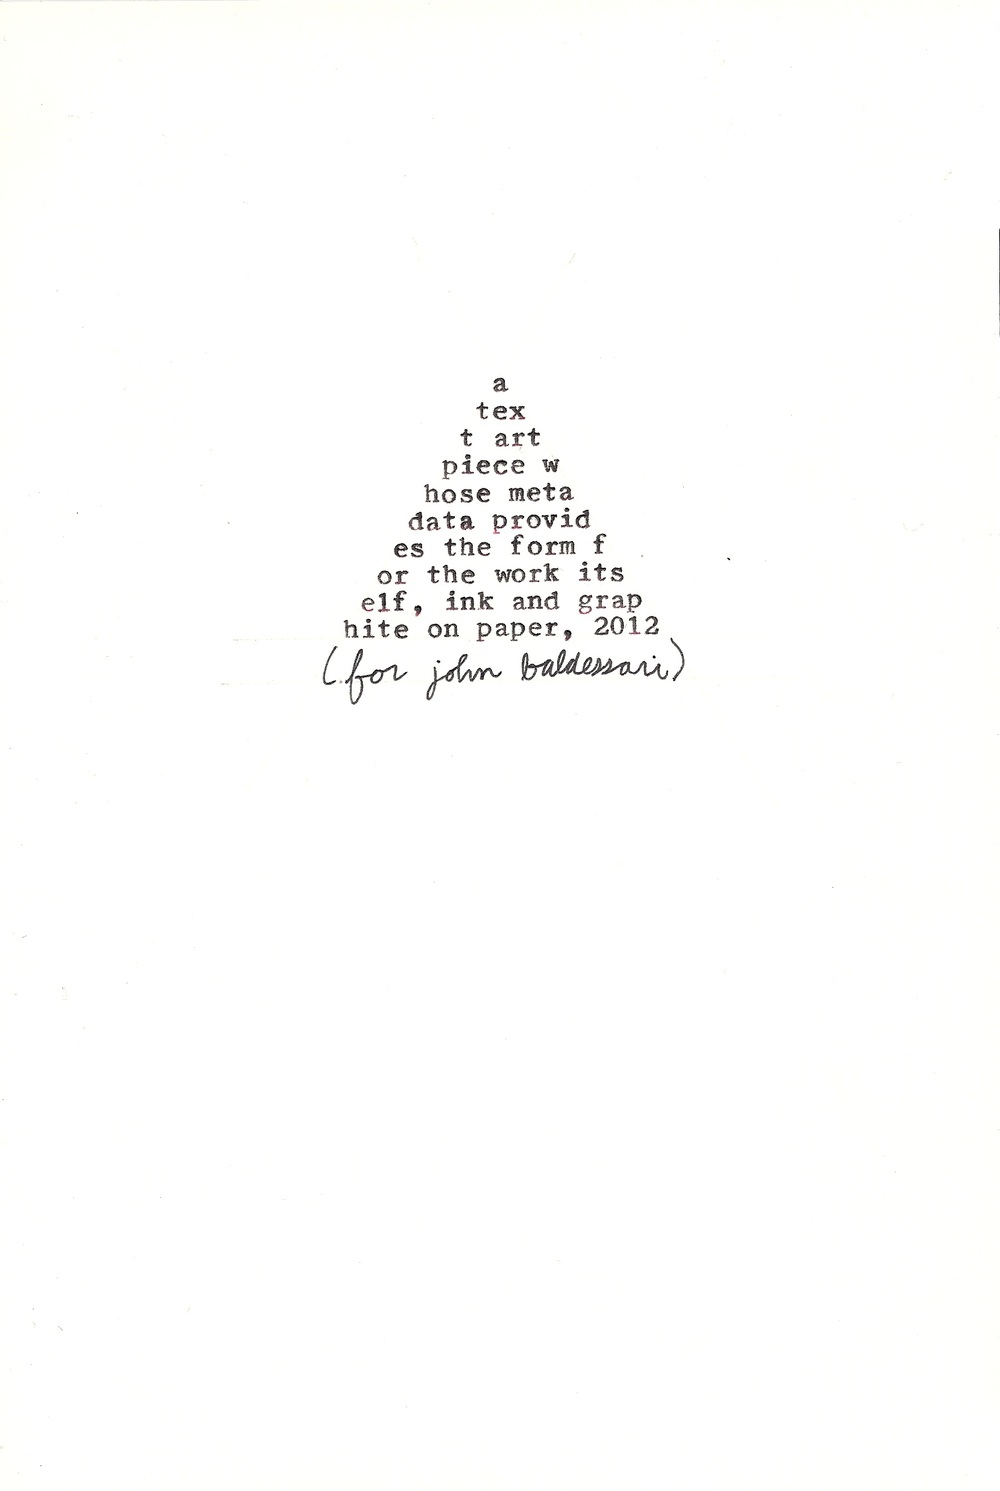 Jack_Murphy_For_John_Baldessari-1.jpg